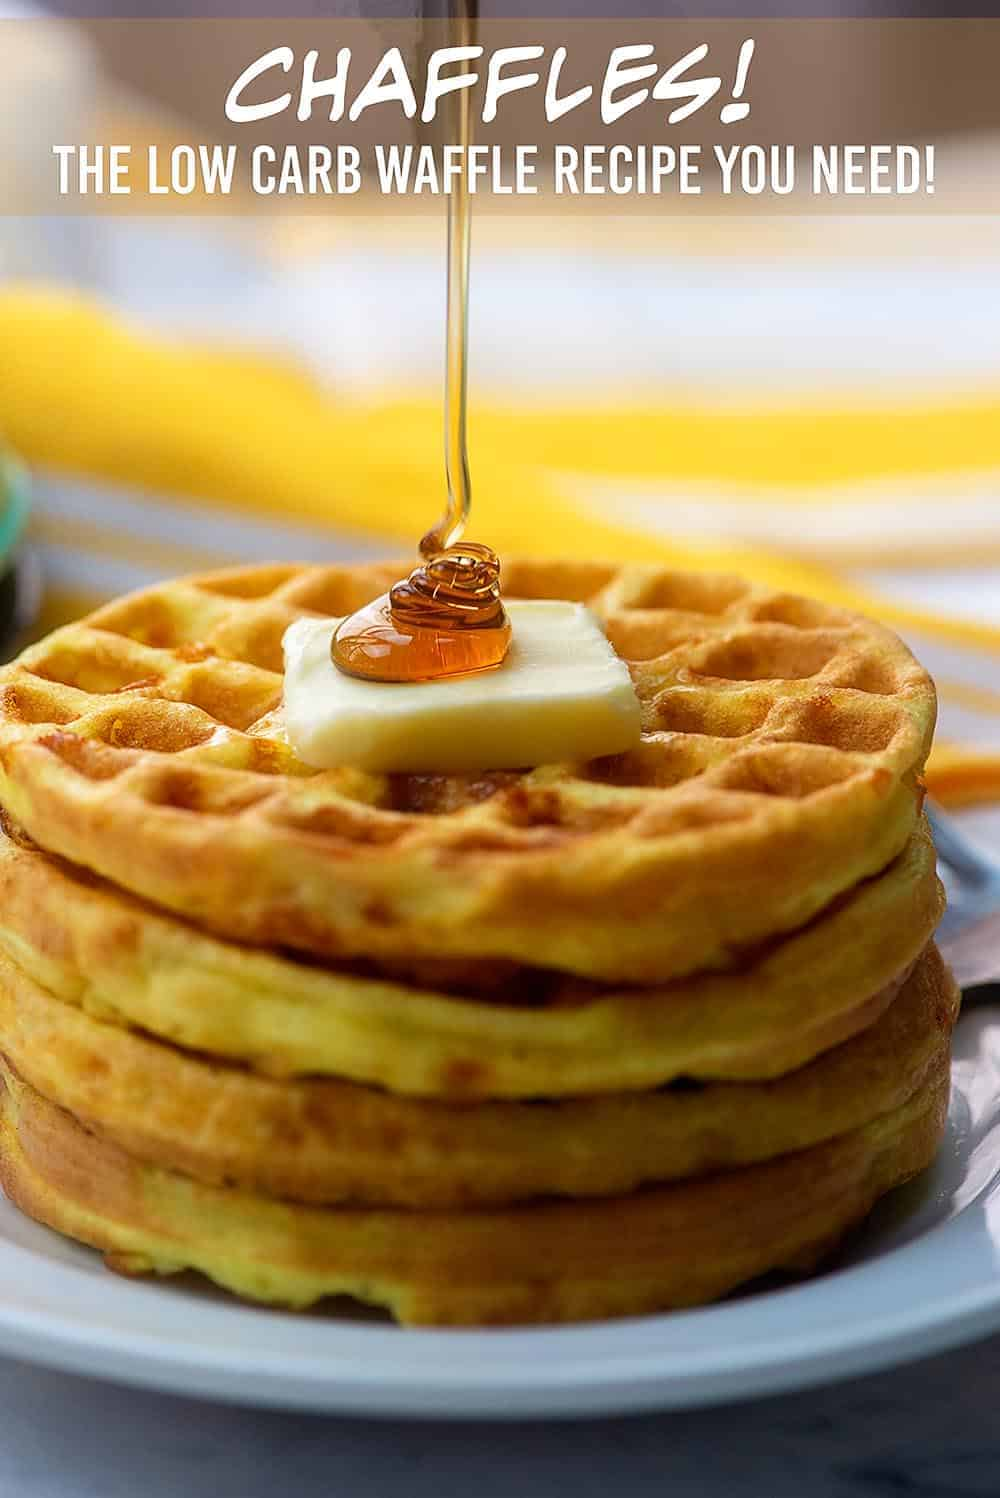 Chaffles! What they are, how to make them, and all your FAQs answered about these low carb waffles that are taking the internet by storm! #lowcarb #keto #chaffles